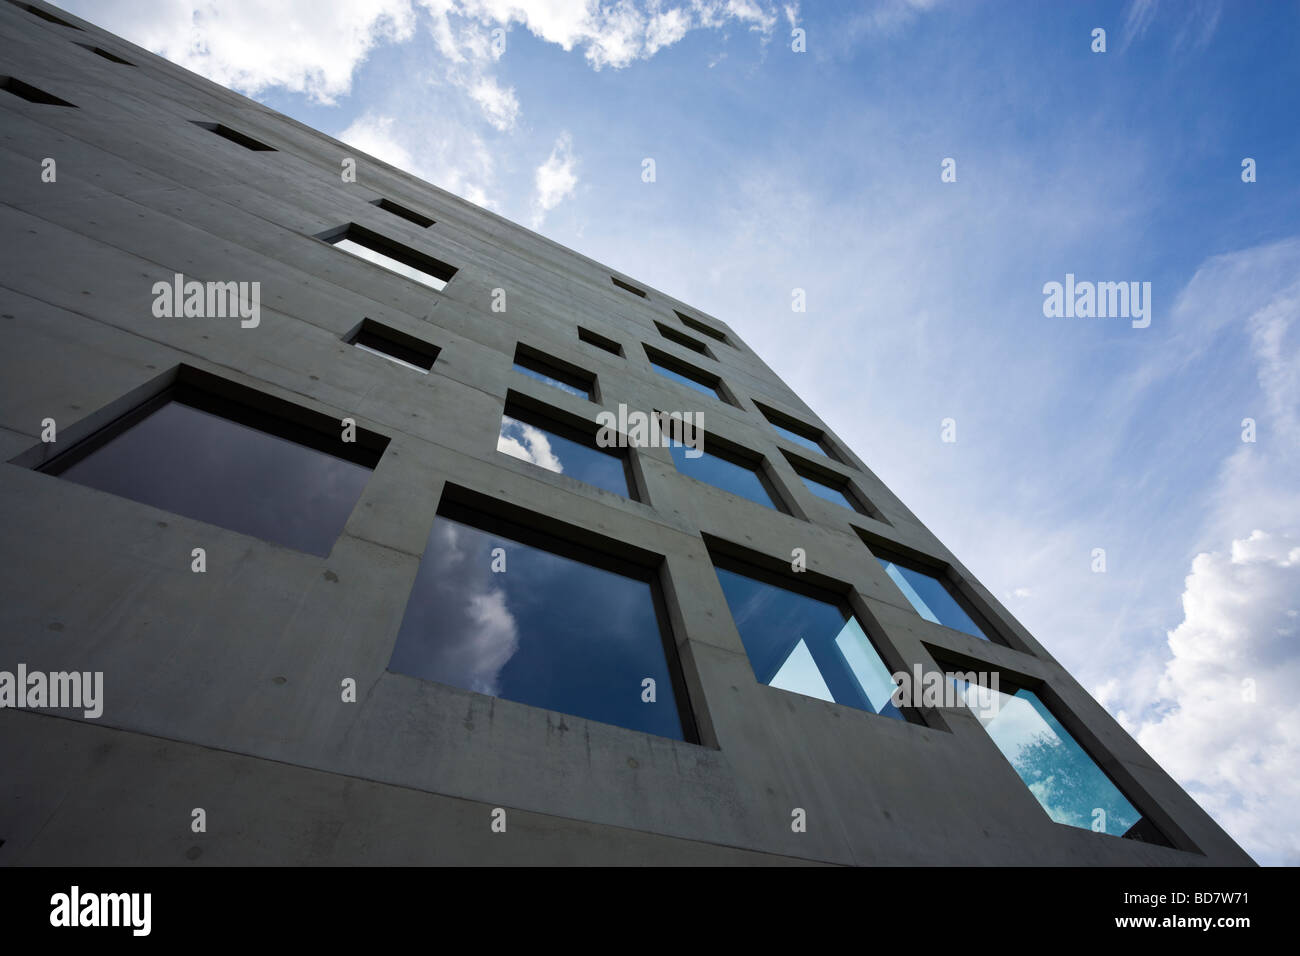 detail of Zollverein School For Management And Design building at the Zollverein Coal Mine Industrial Complex - Stock Image